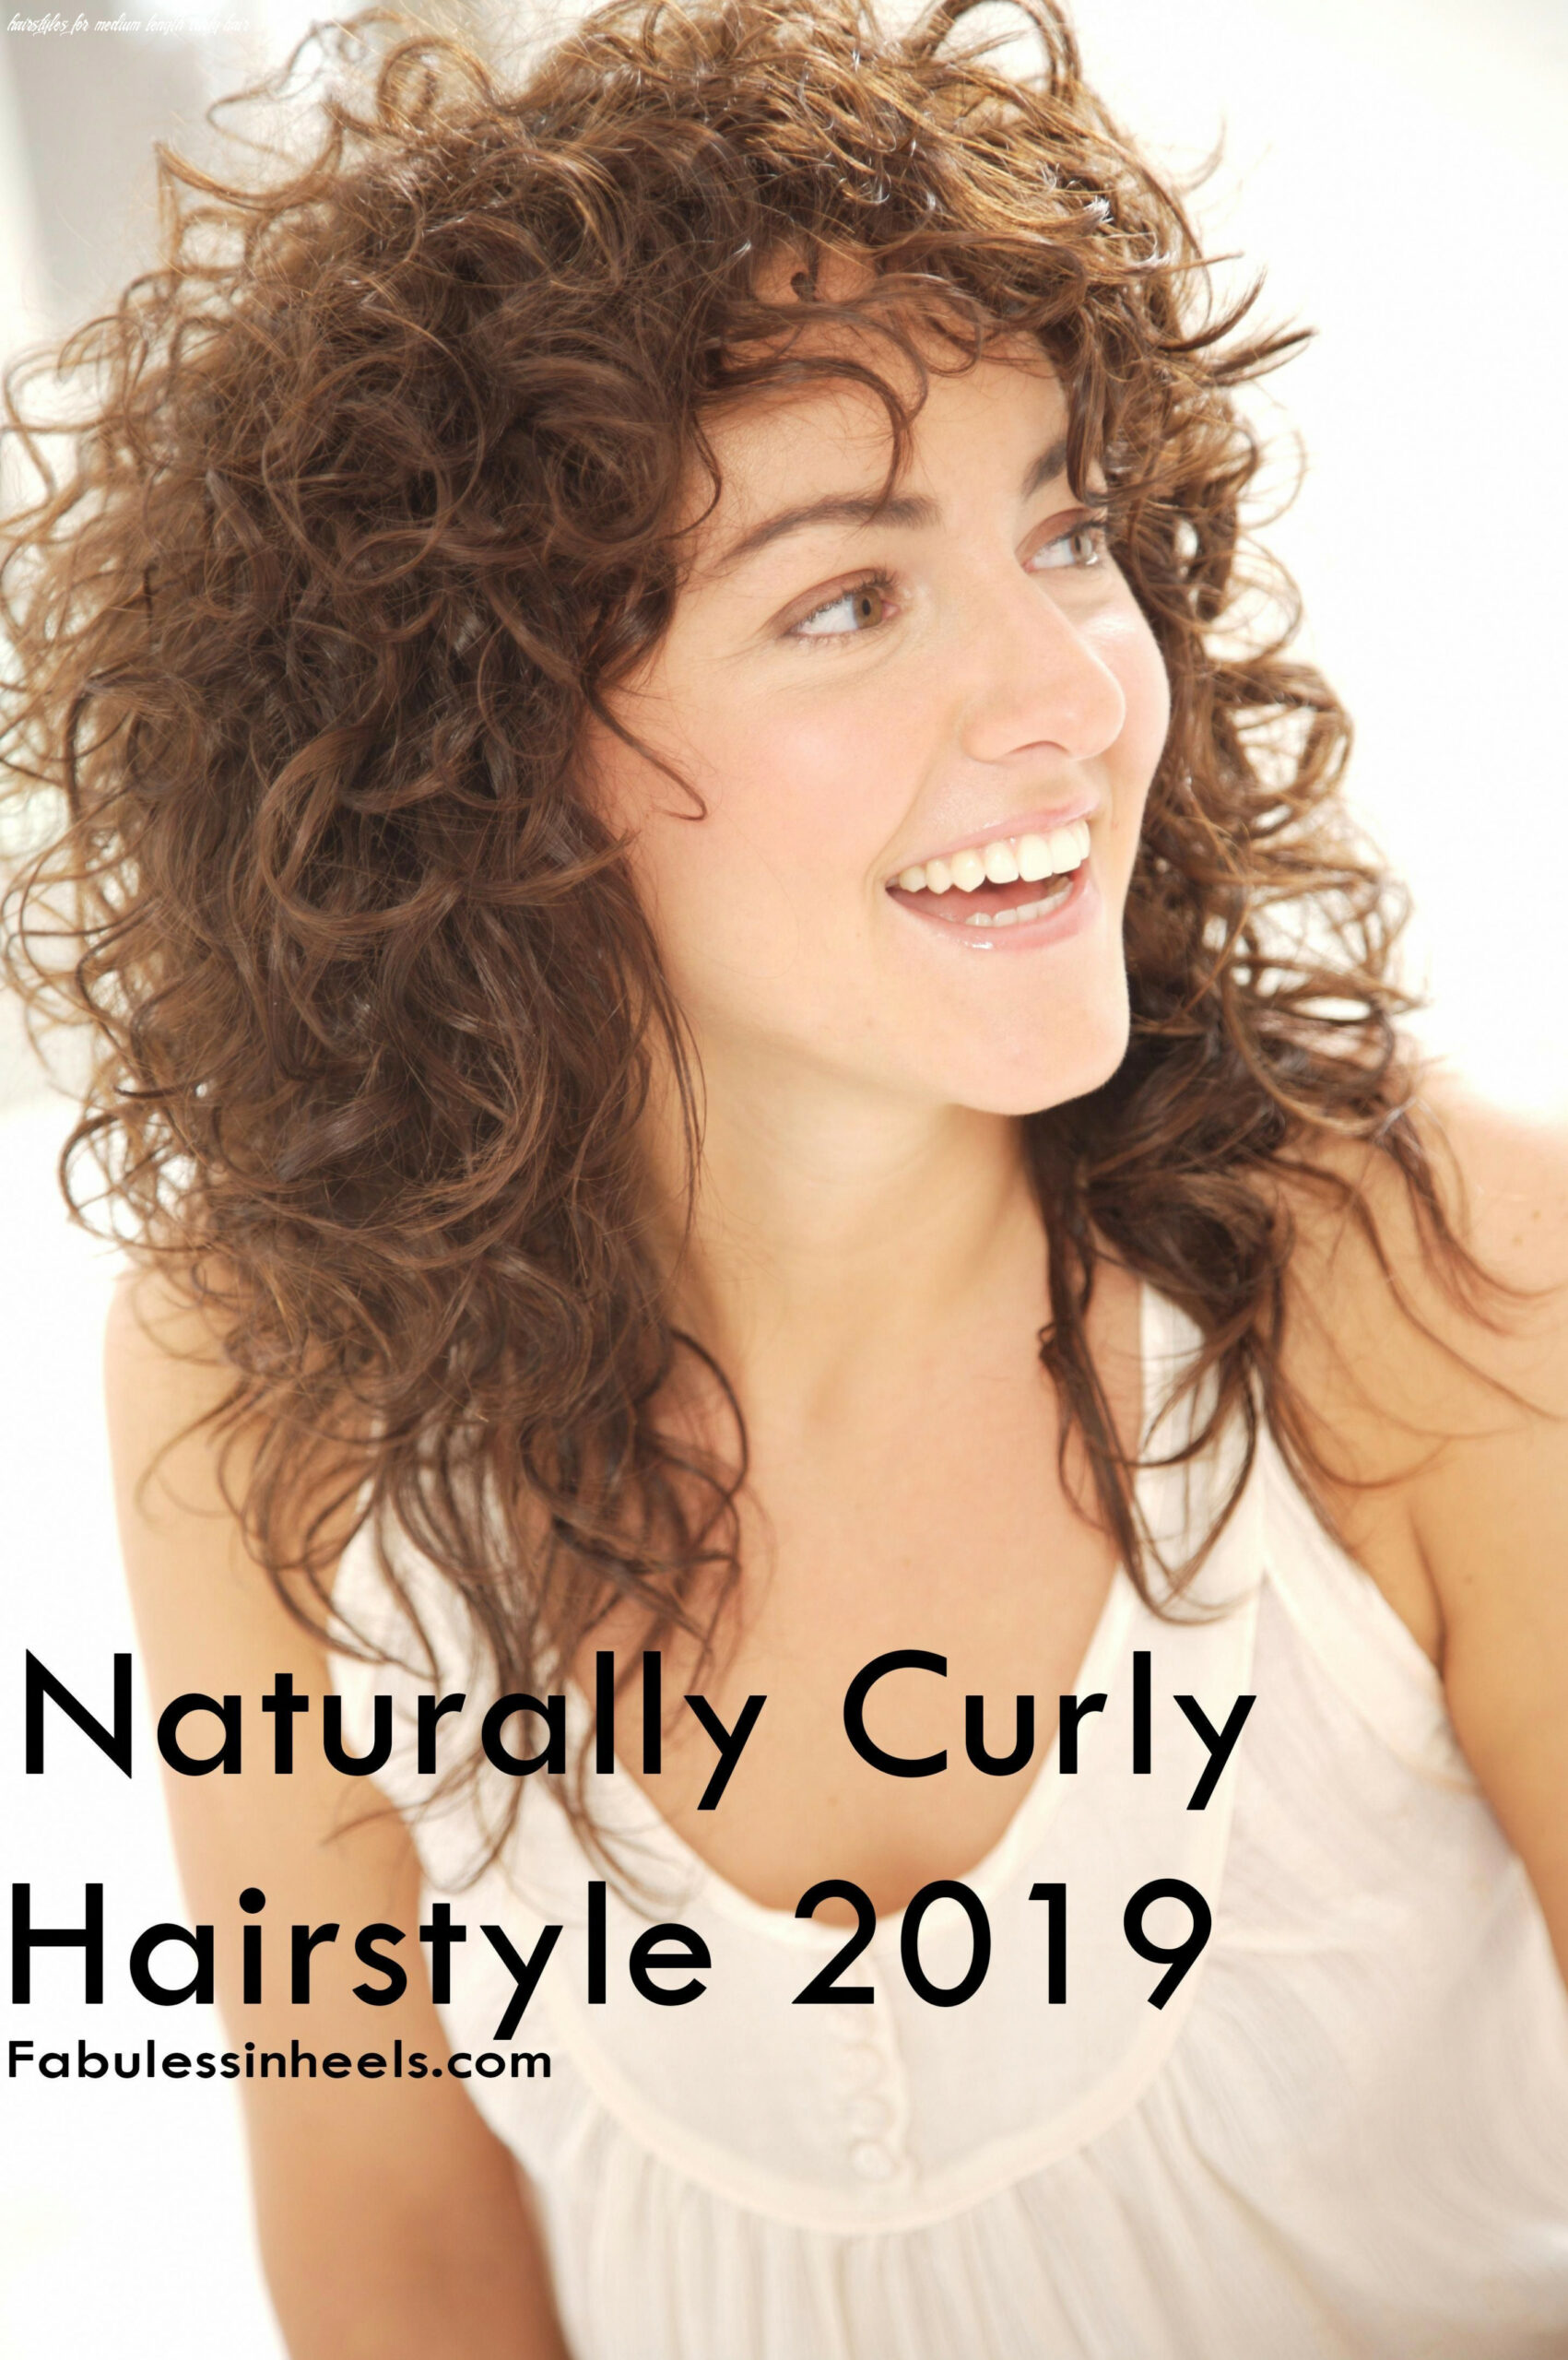 10 hairstyles for naturally curly hair to rock this summer